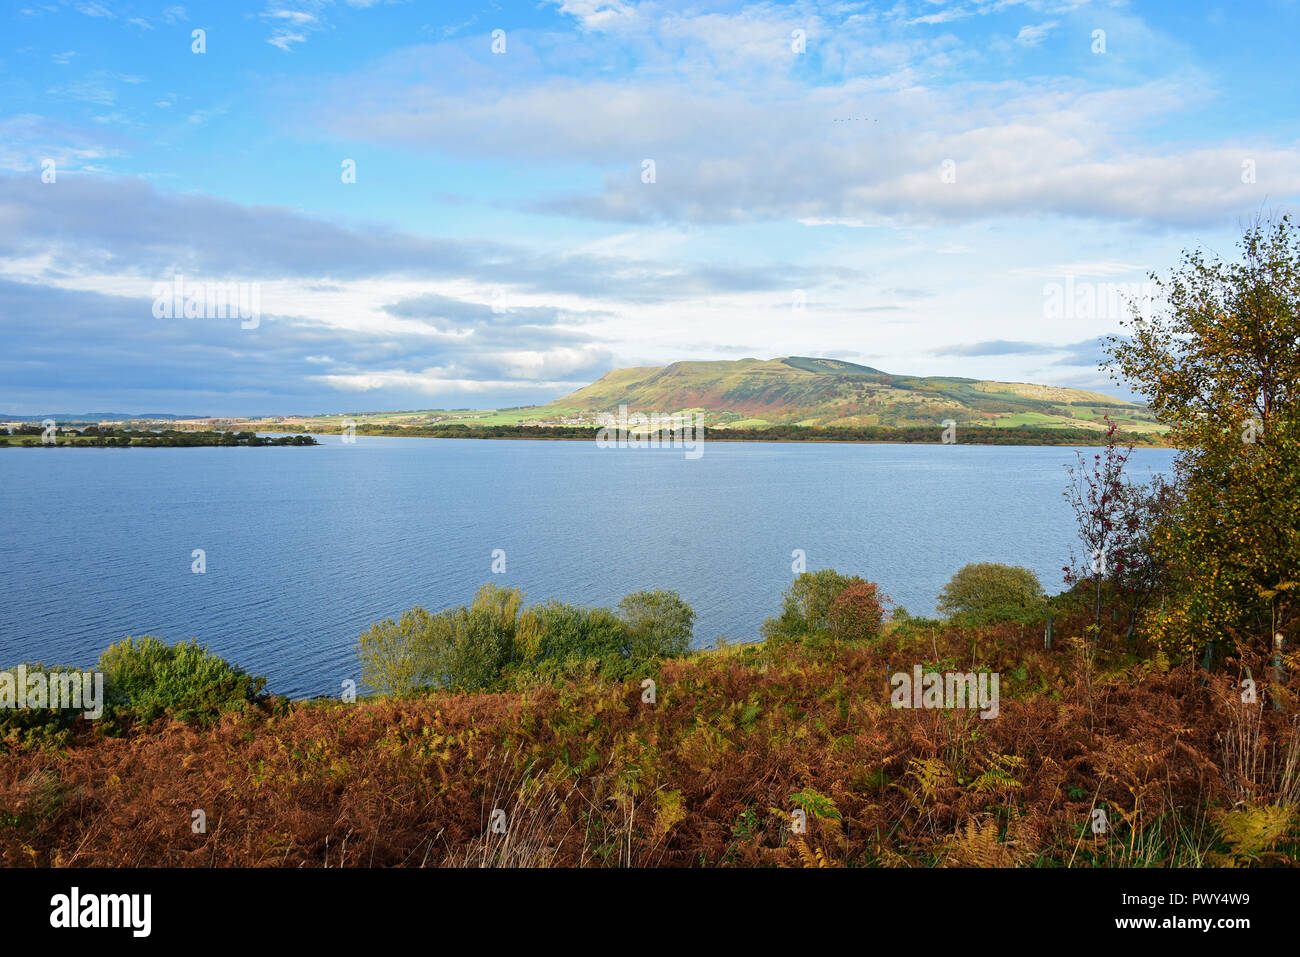 Kinross, Scotland, United Kingdom, 18, October, 2018. Autumn colours in a general view of Loch Leven. © Ken Jack / Alamy Live News - Stock Image